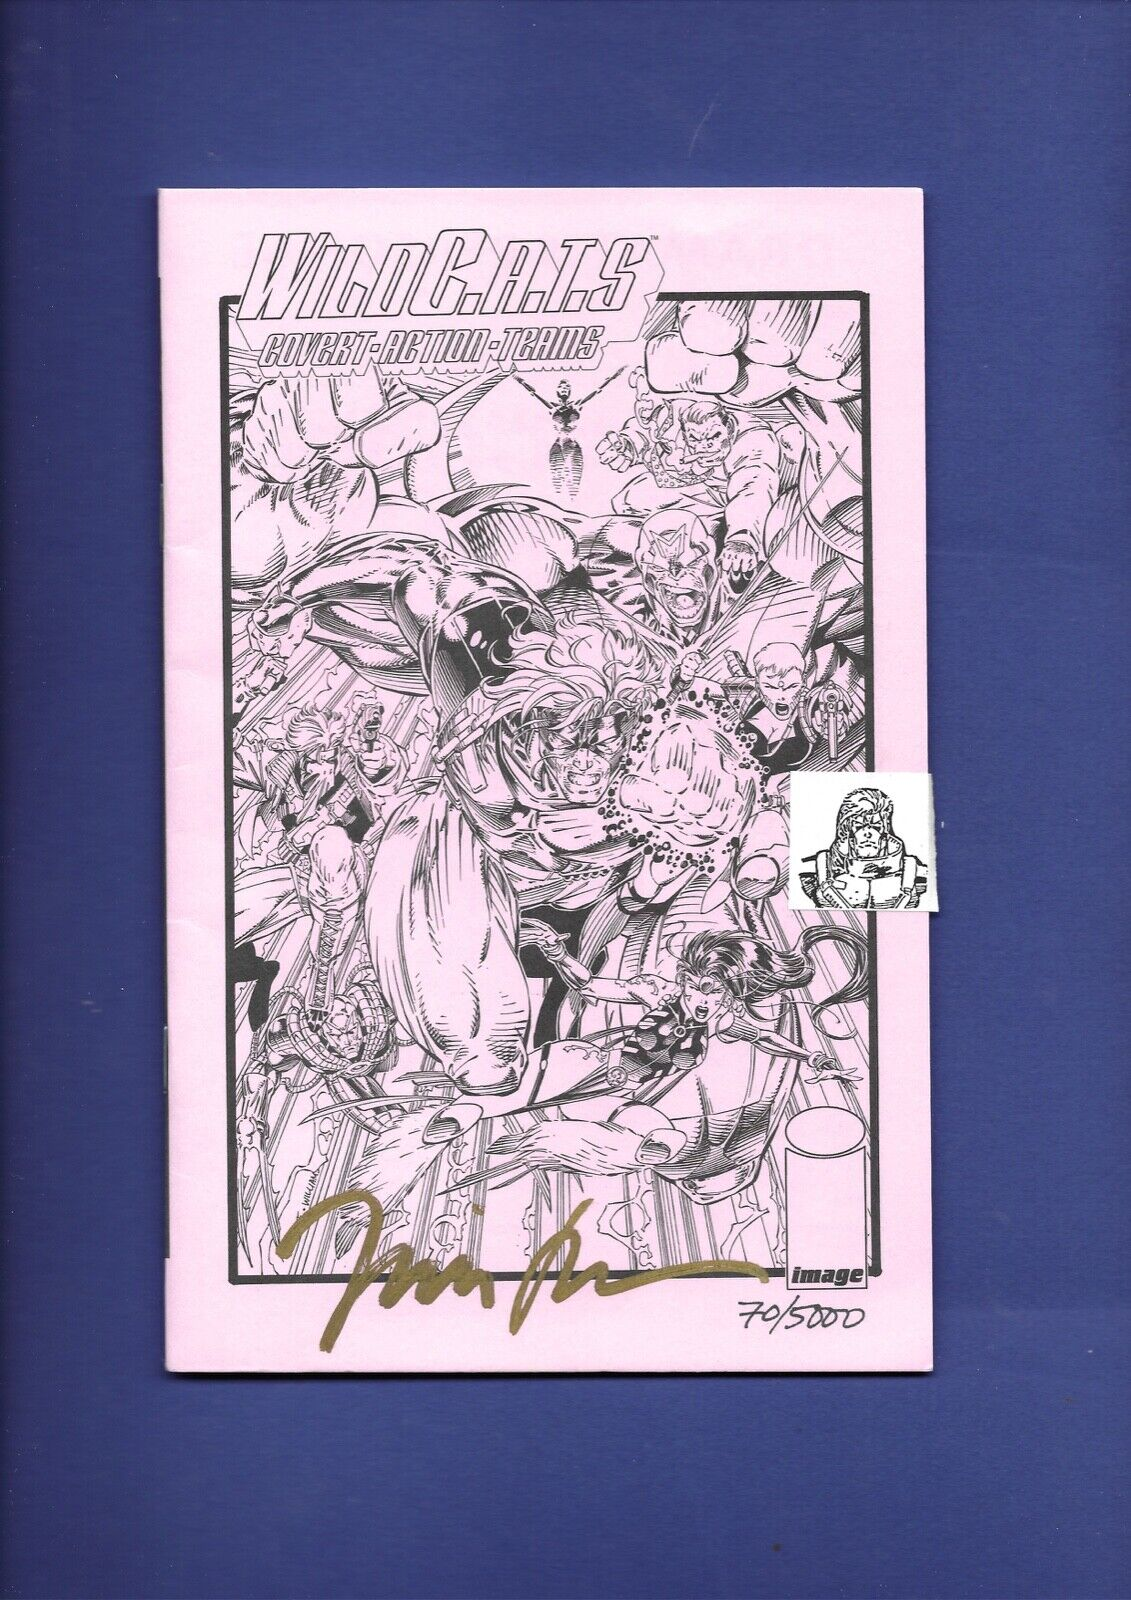 Wildcats 1 PINK Ashcan Edition August 1992 SIGNED Jim Lee 70/5000 Image Comics - $49.99